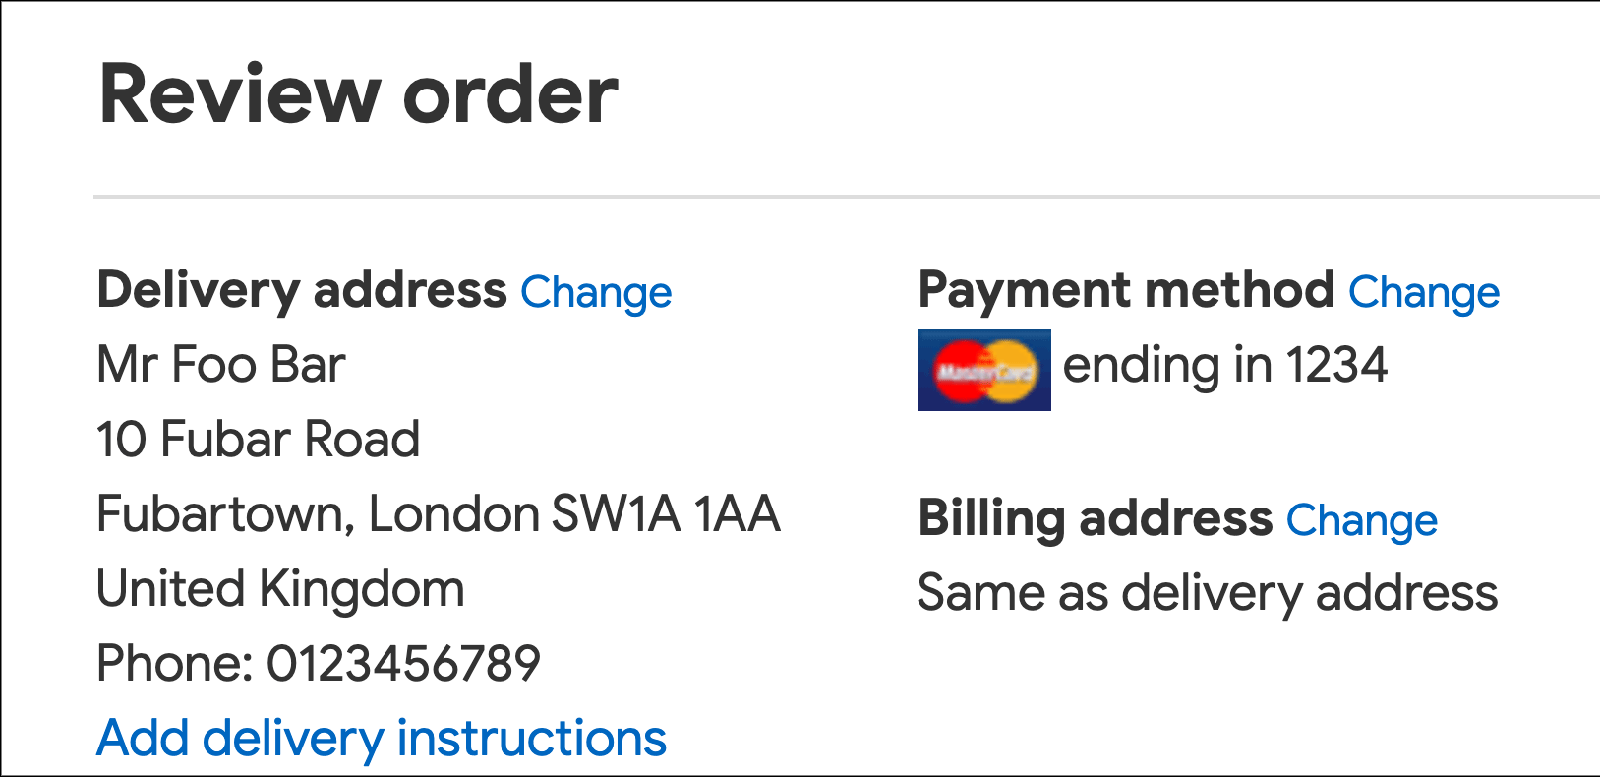 Screenshot of 'Review order' section of checkout page, showing text in plain text, with links to change delivery address, payment method and billing address, which are not displayed.